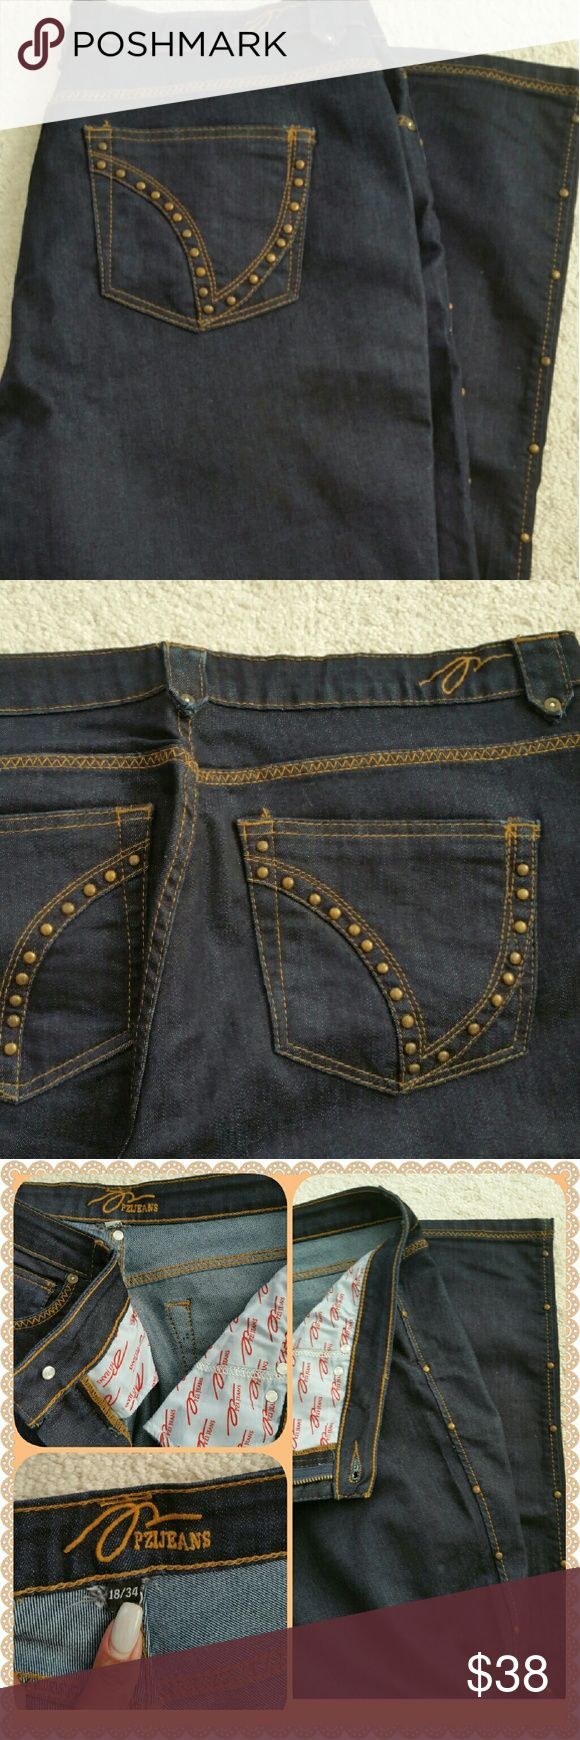 PZI Jeans PZI Jeans are the jeans for women with curves.  The dark washed jeans have 5 pockets, gold studs down the sides of each leg with gold stitching also. Last picture is just to show the fit. PZI Jeans Straight Leg